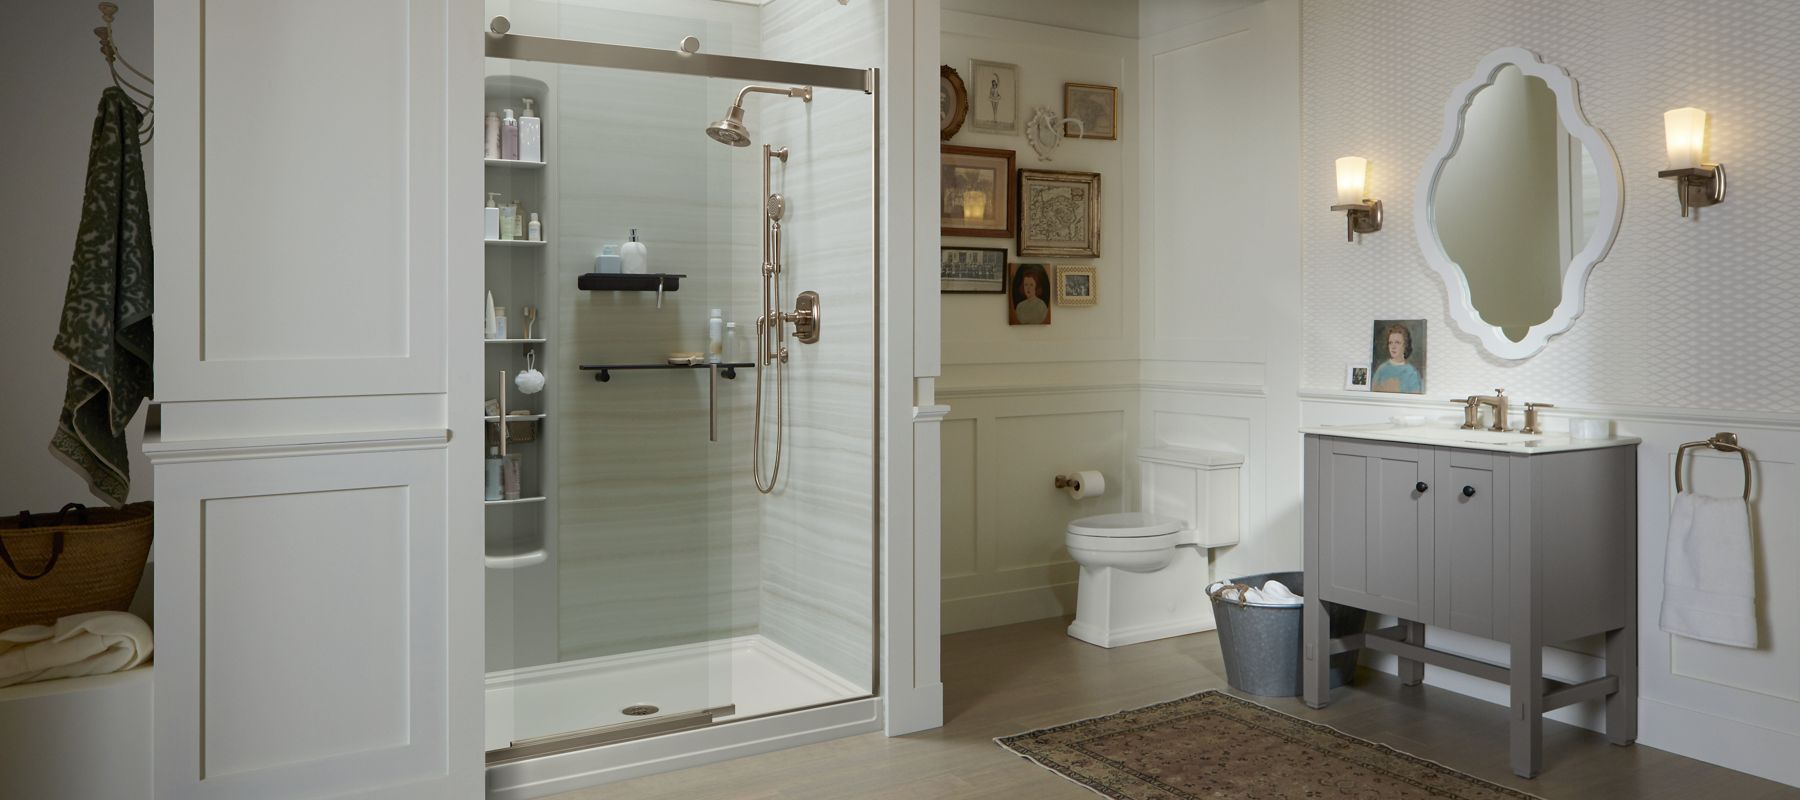 shower doors showering bathroom kohler levity sliding shower doors